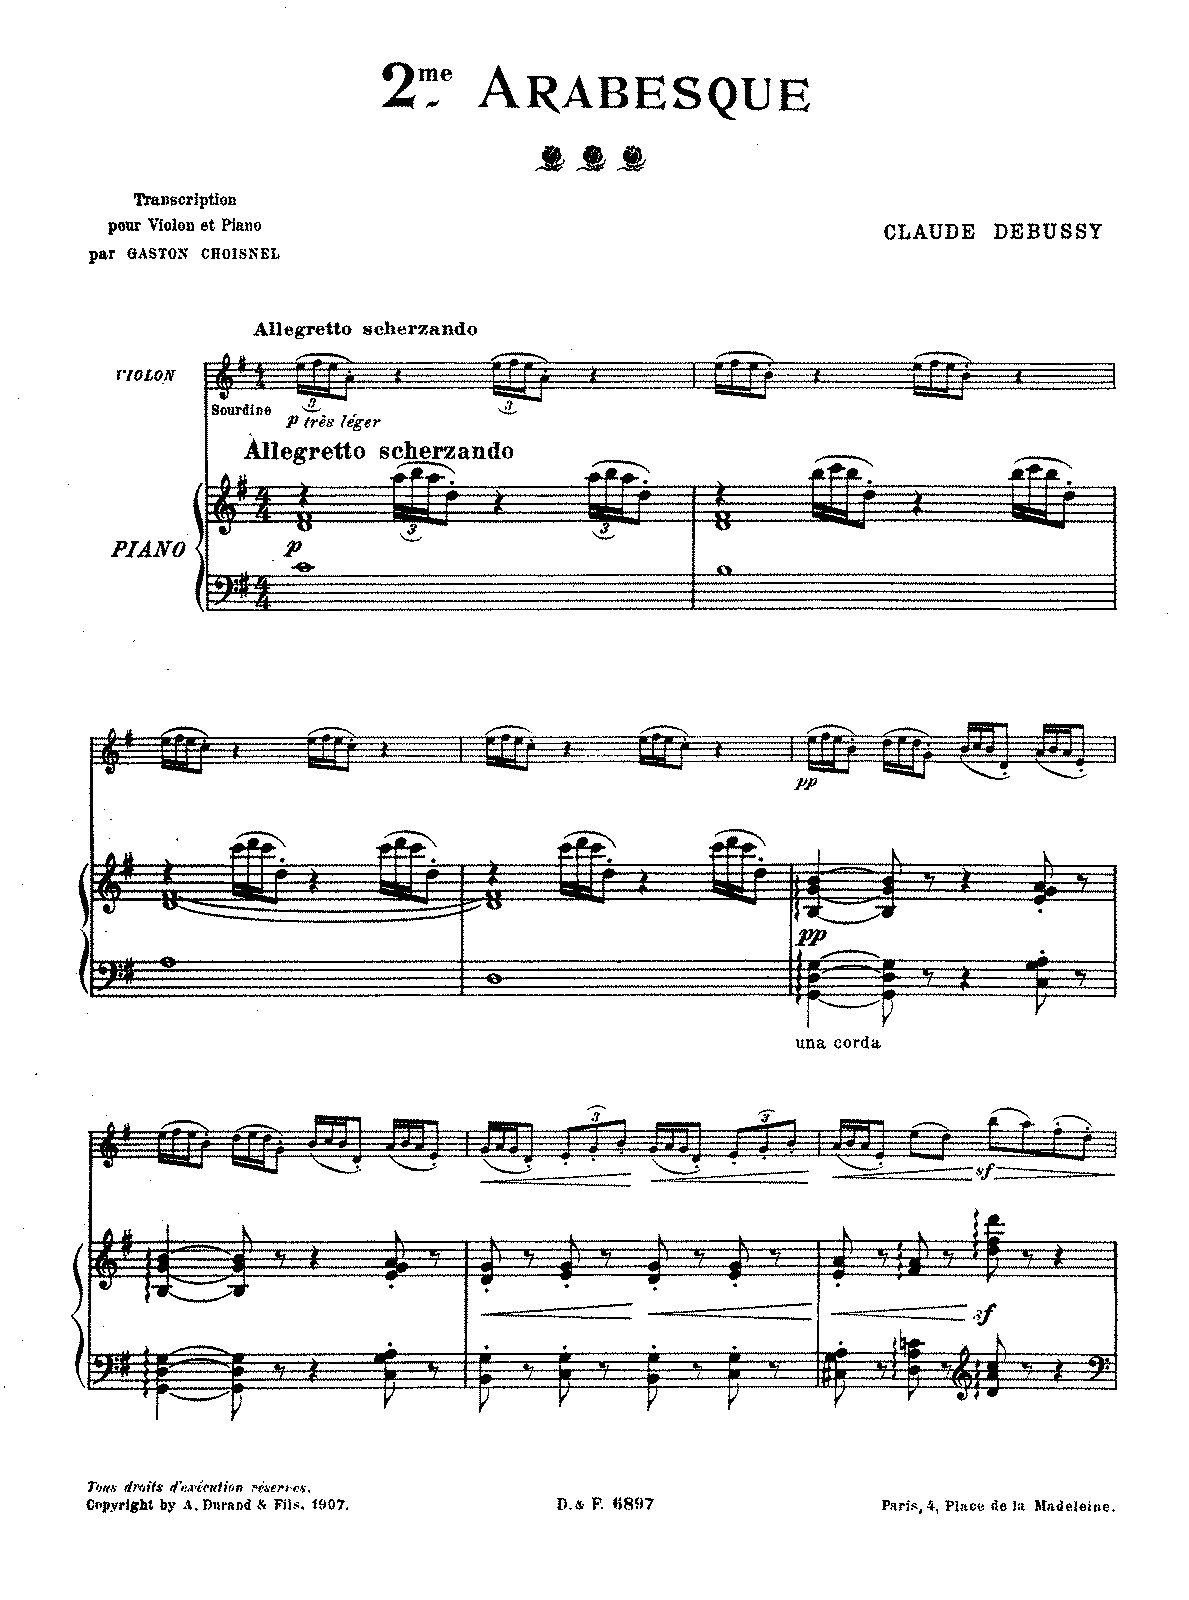 PMLP02383-Debussy - 2nd Arabesque for violin and piano score.pdf